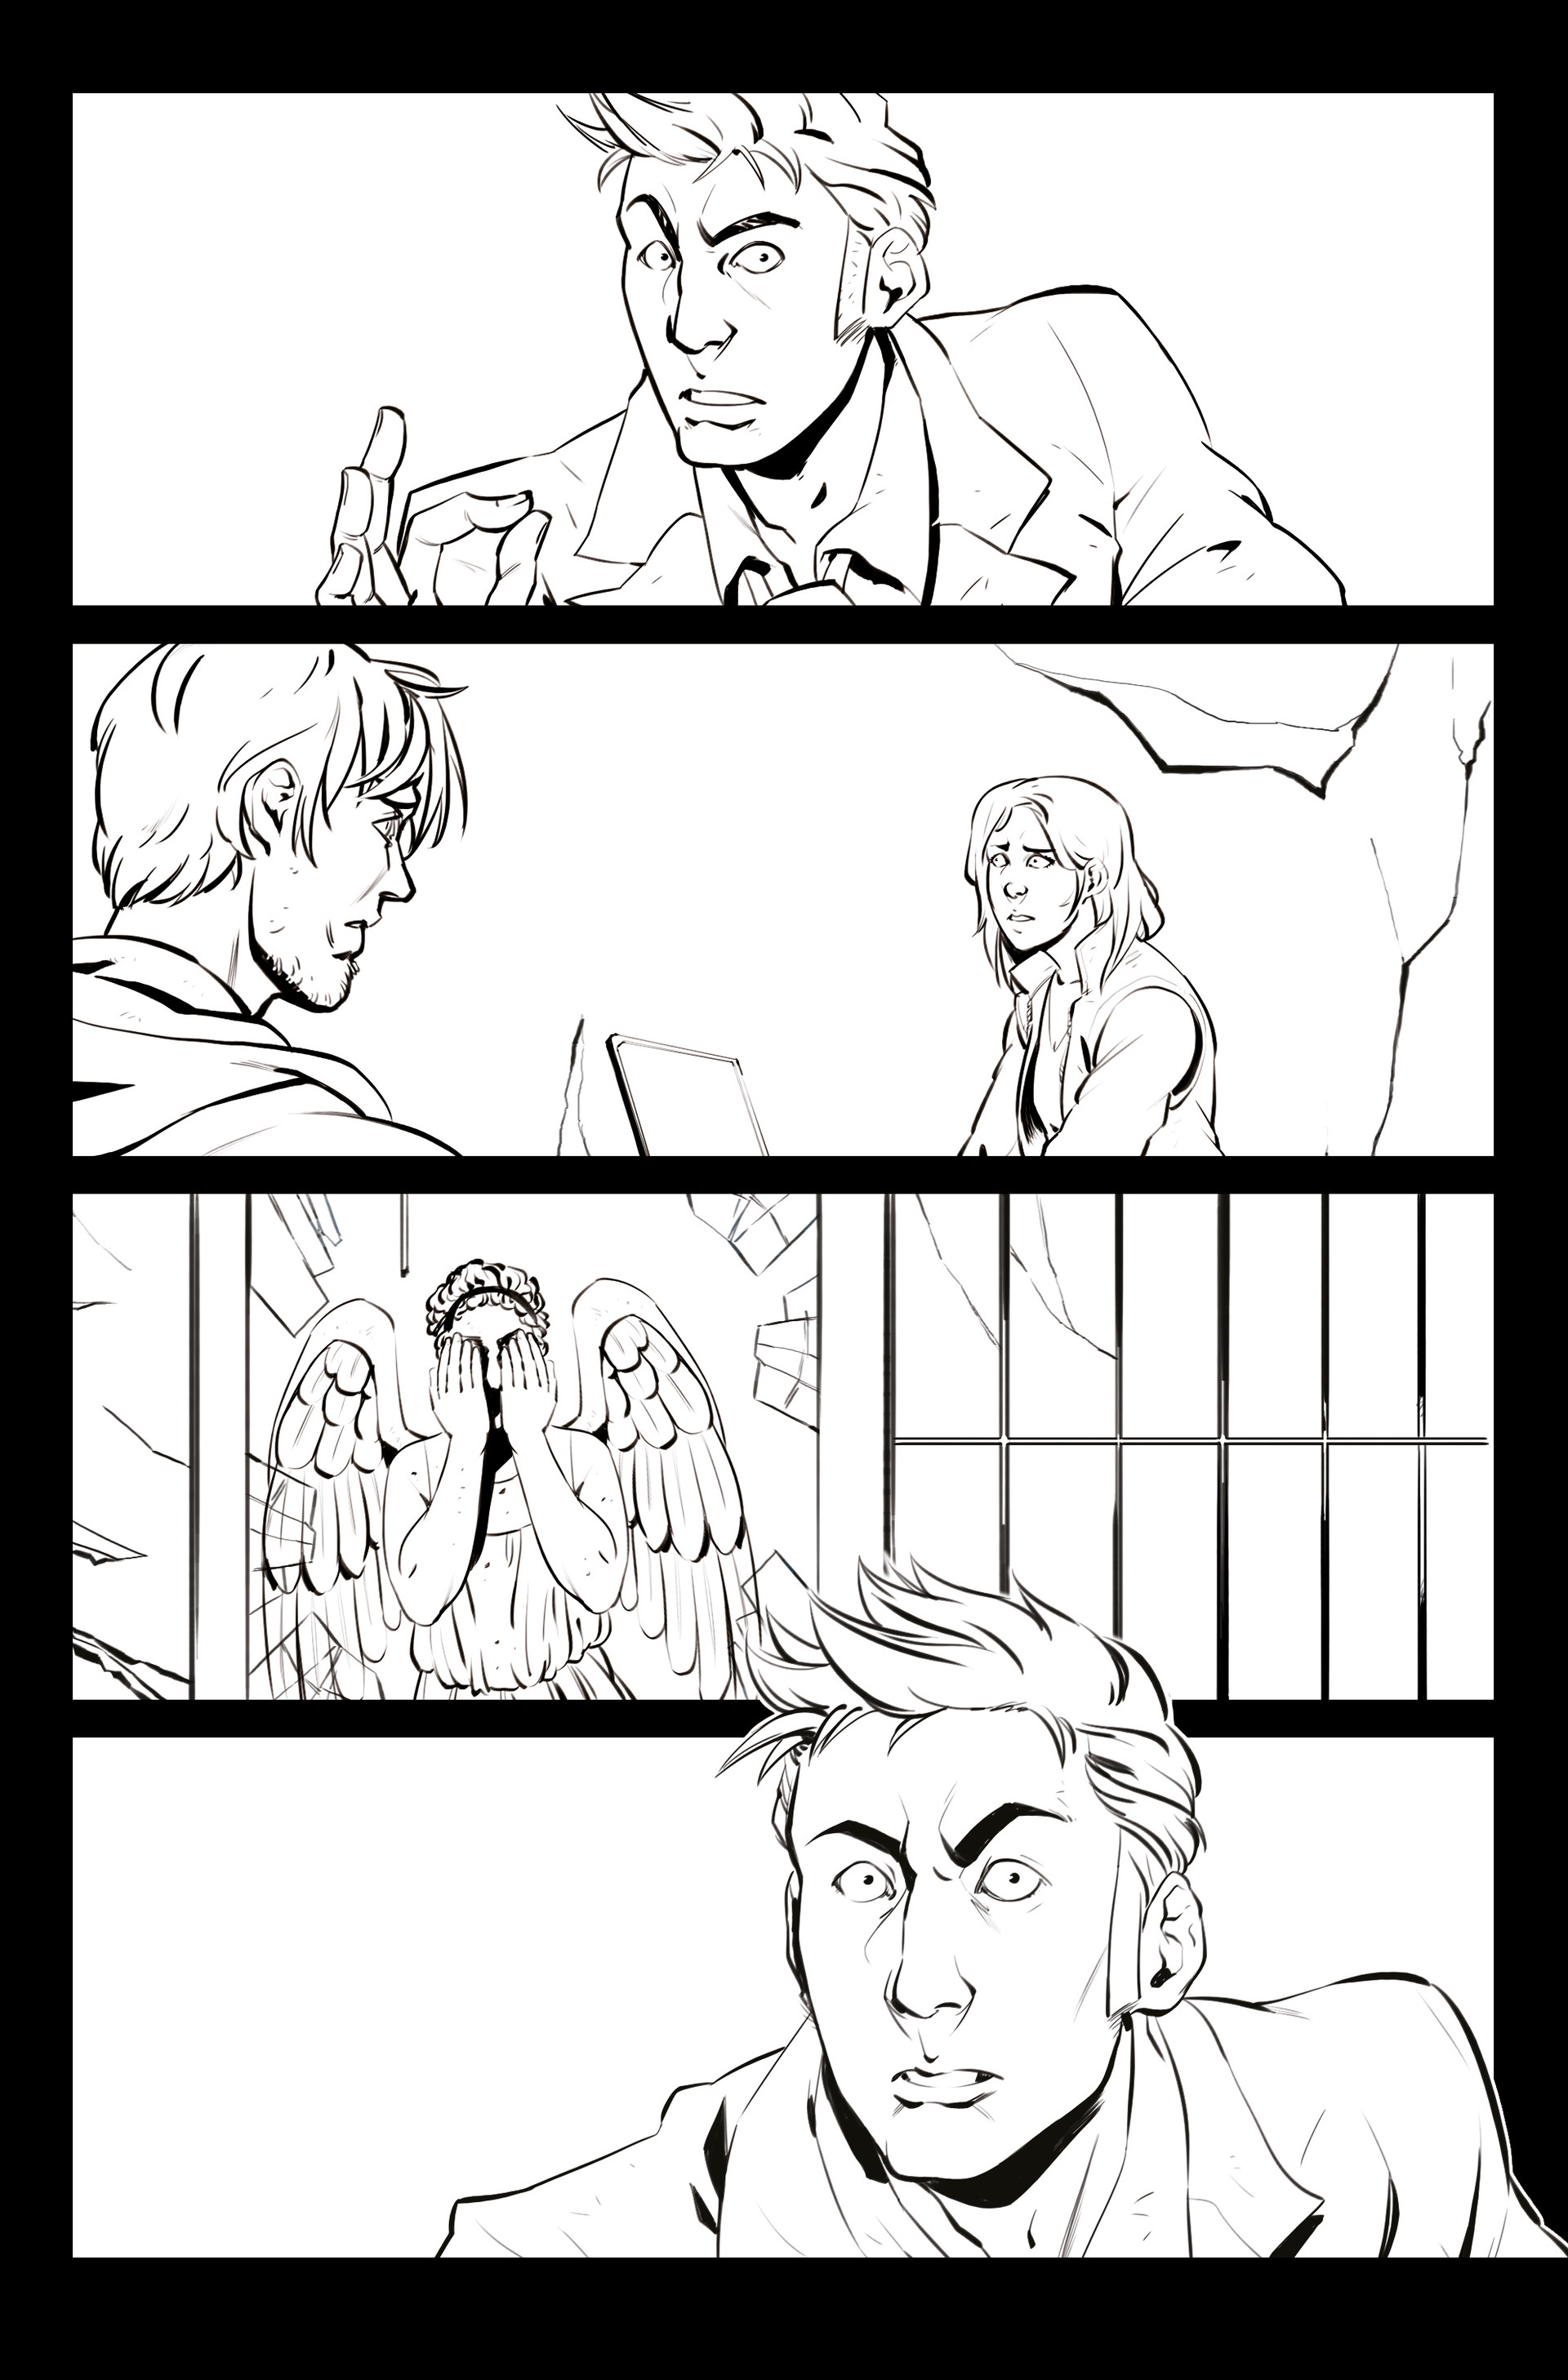 Claudia cocci doctor who page 01 new line